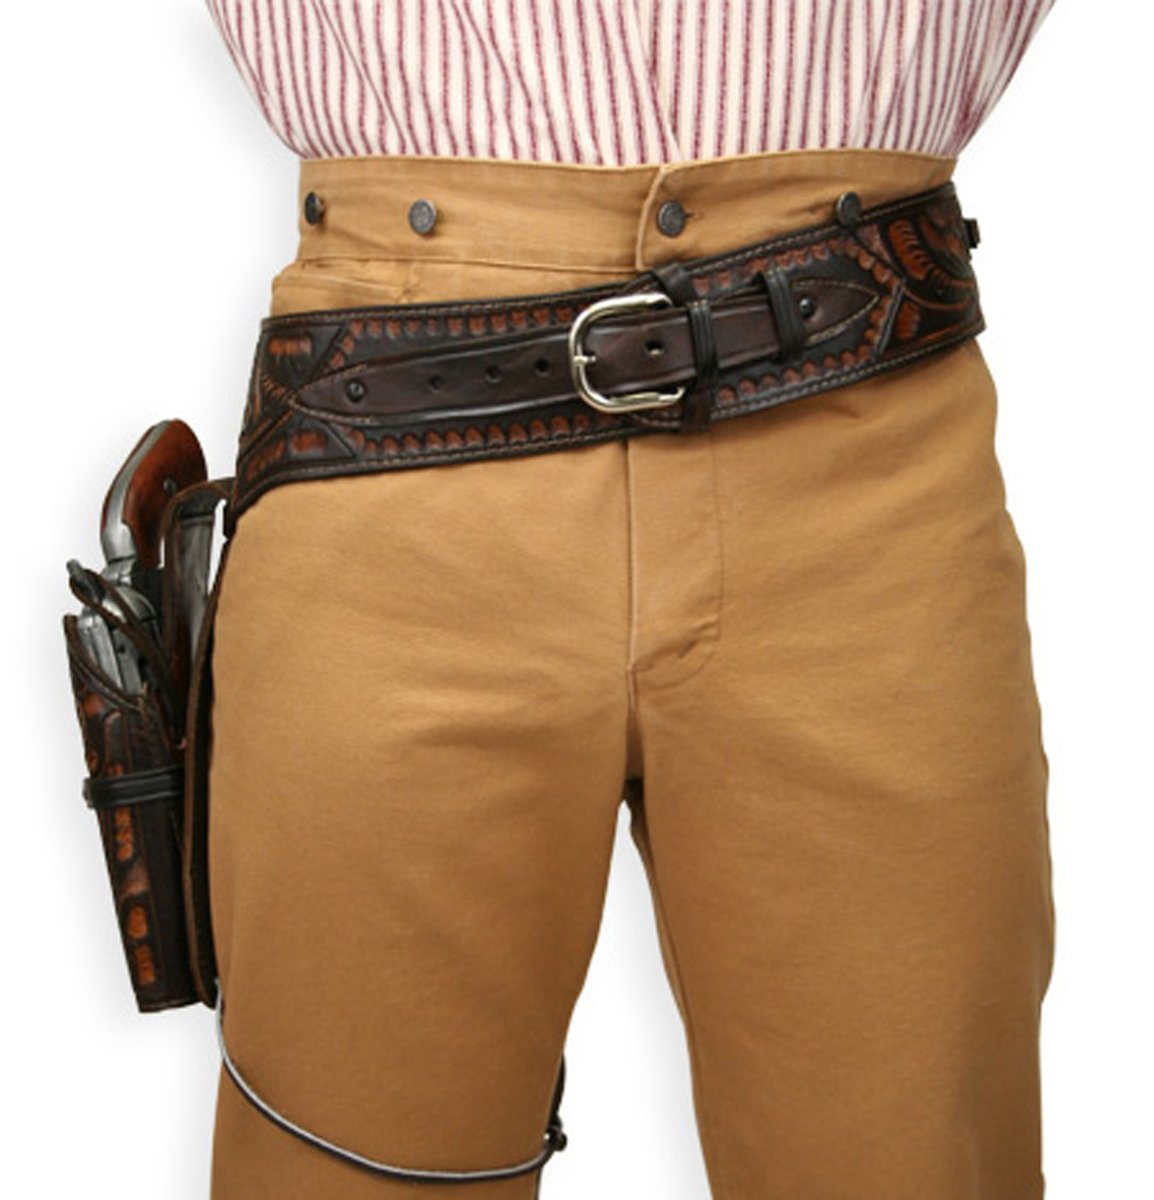 Men's Steampunk Goggles, Guns, Gadgets & Watches  Tooled Leather Western Gun Belt and Holster .44/.45 cal $125.95 AT vintagedancer.com